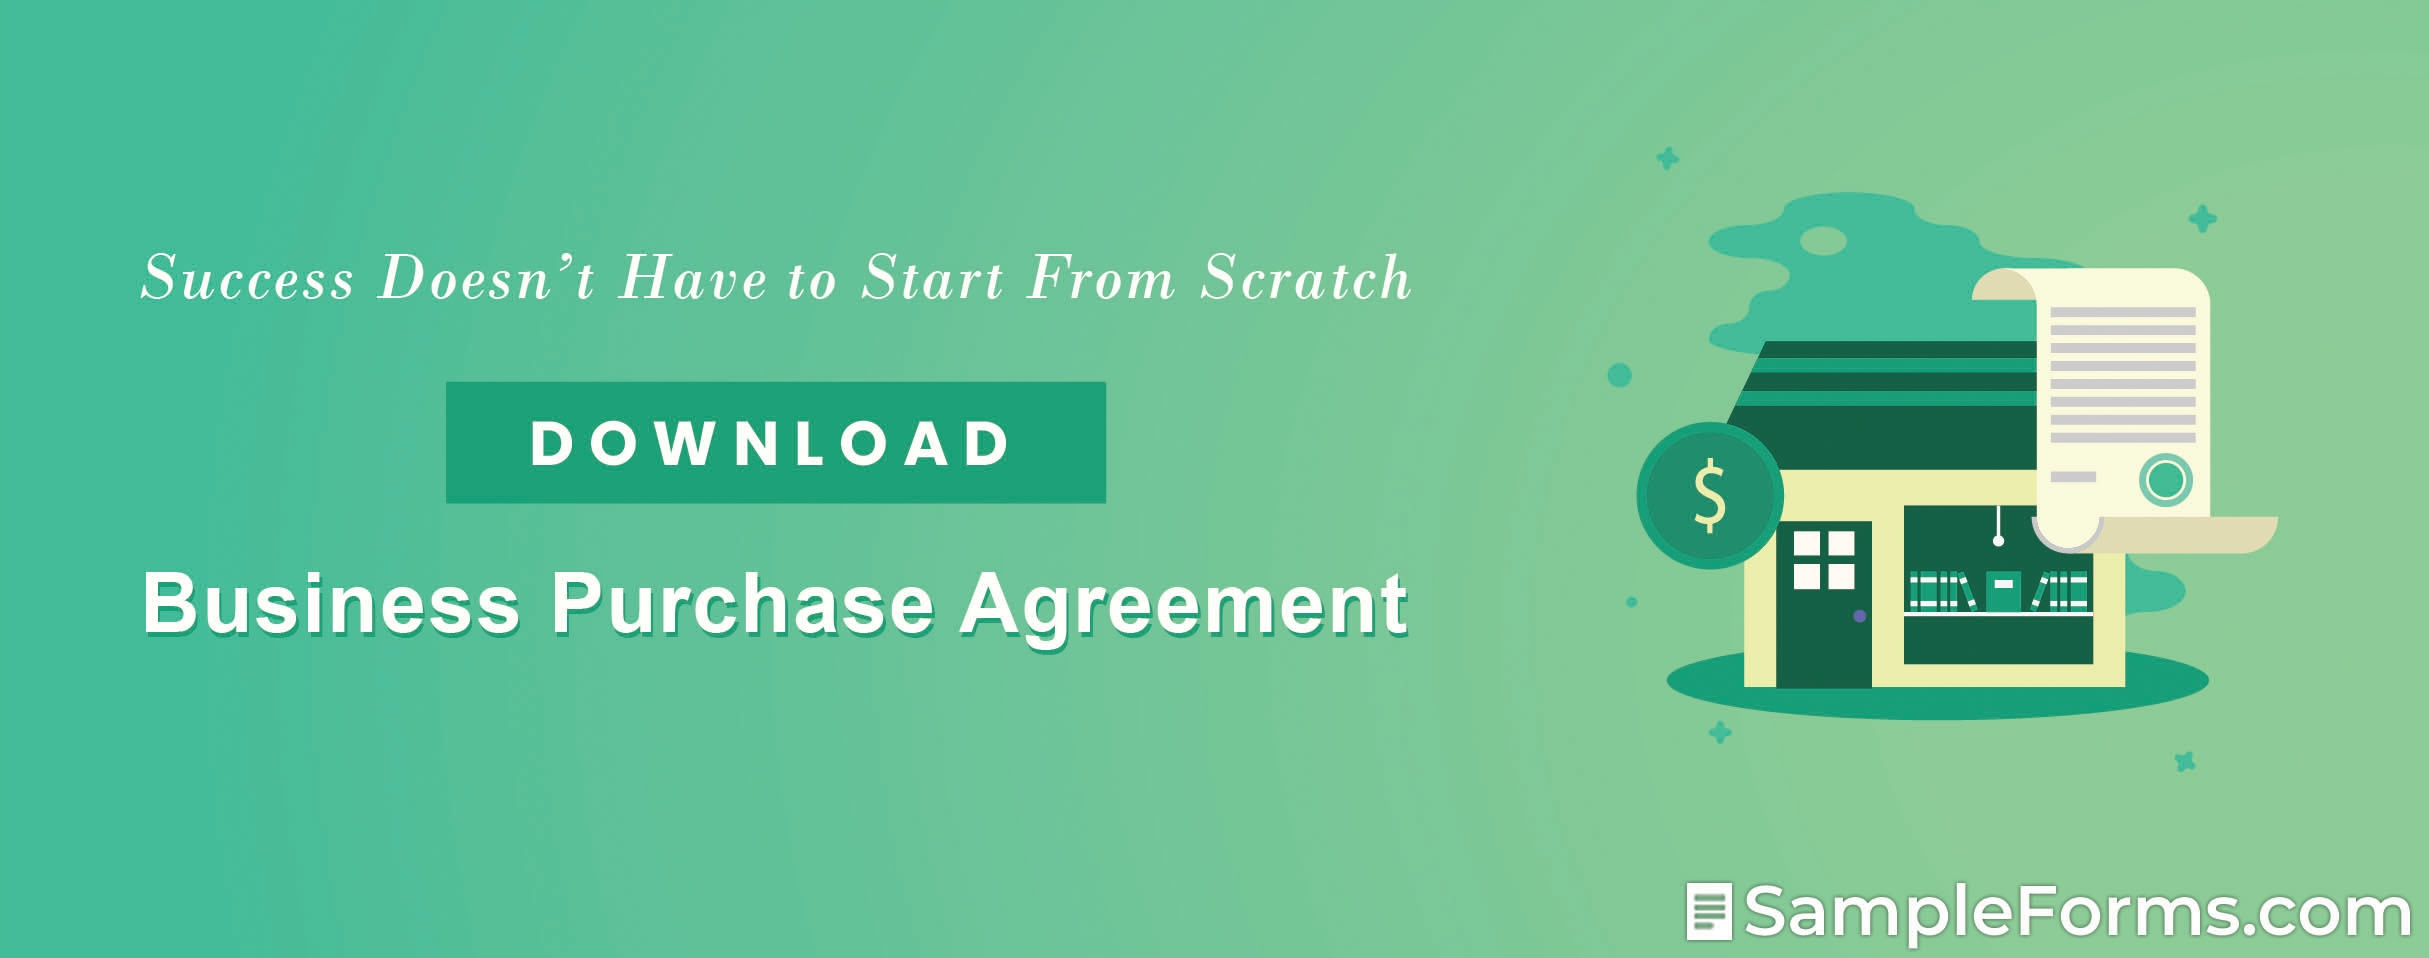 Business Purchase Agreement